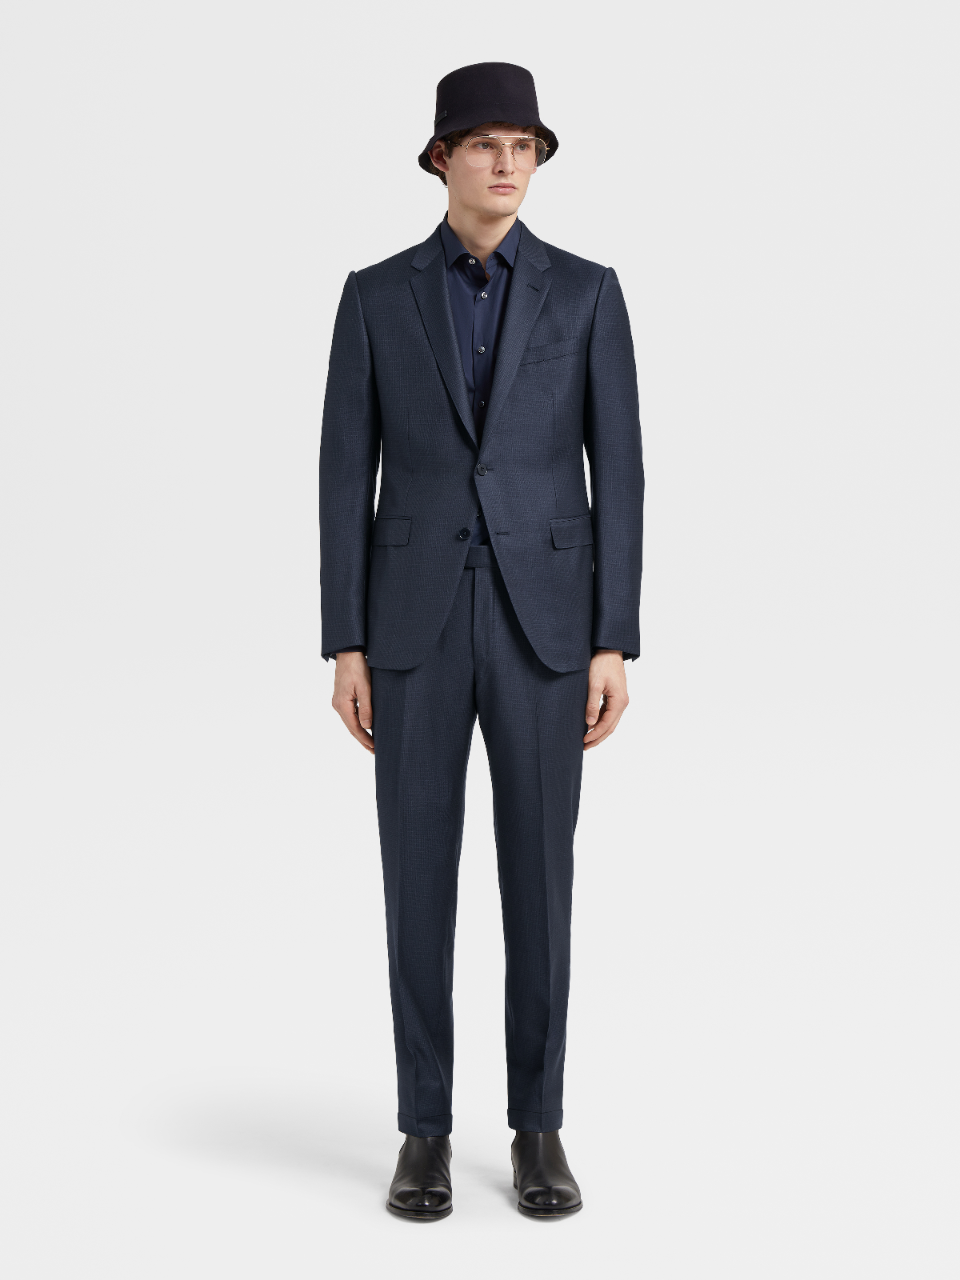 City Textured AchillFarm™ Notch Lapel Suit